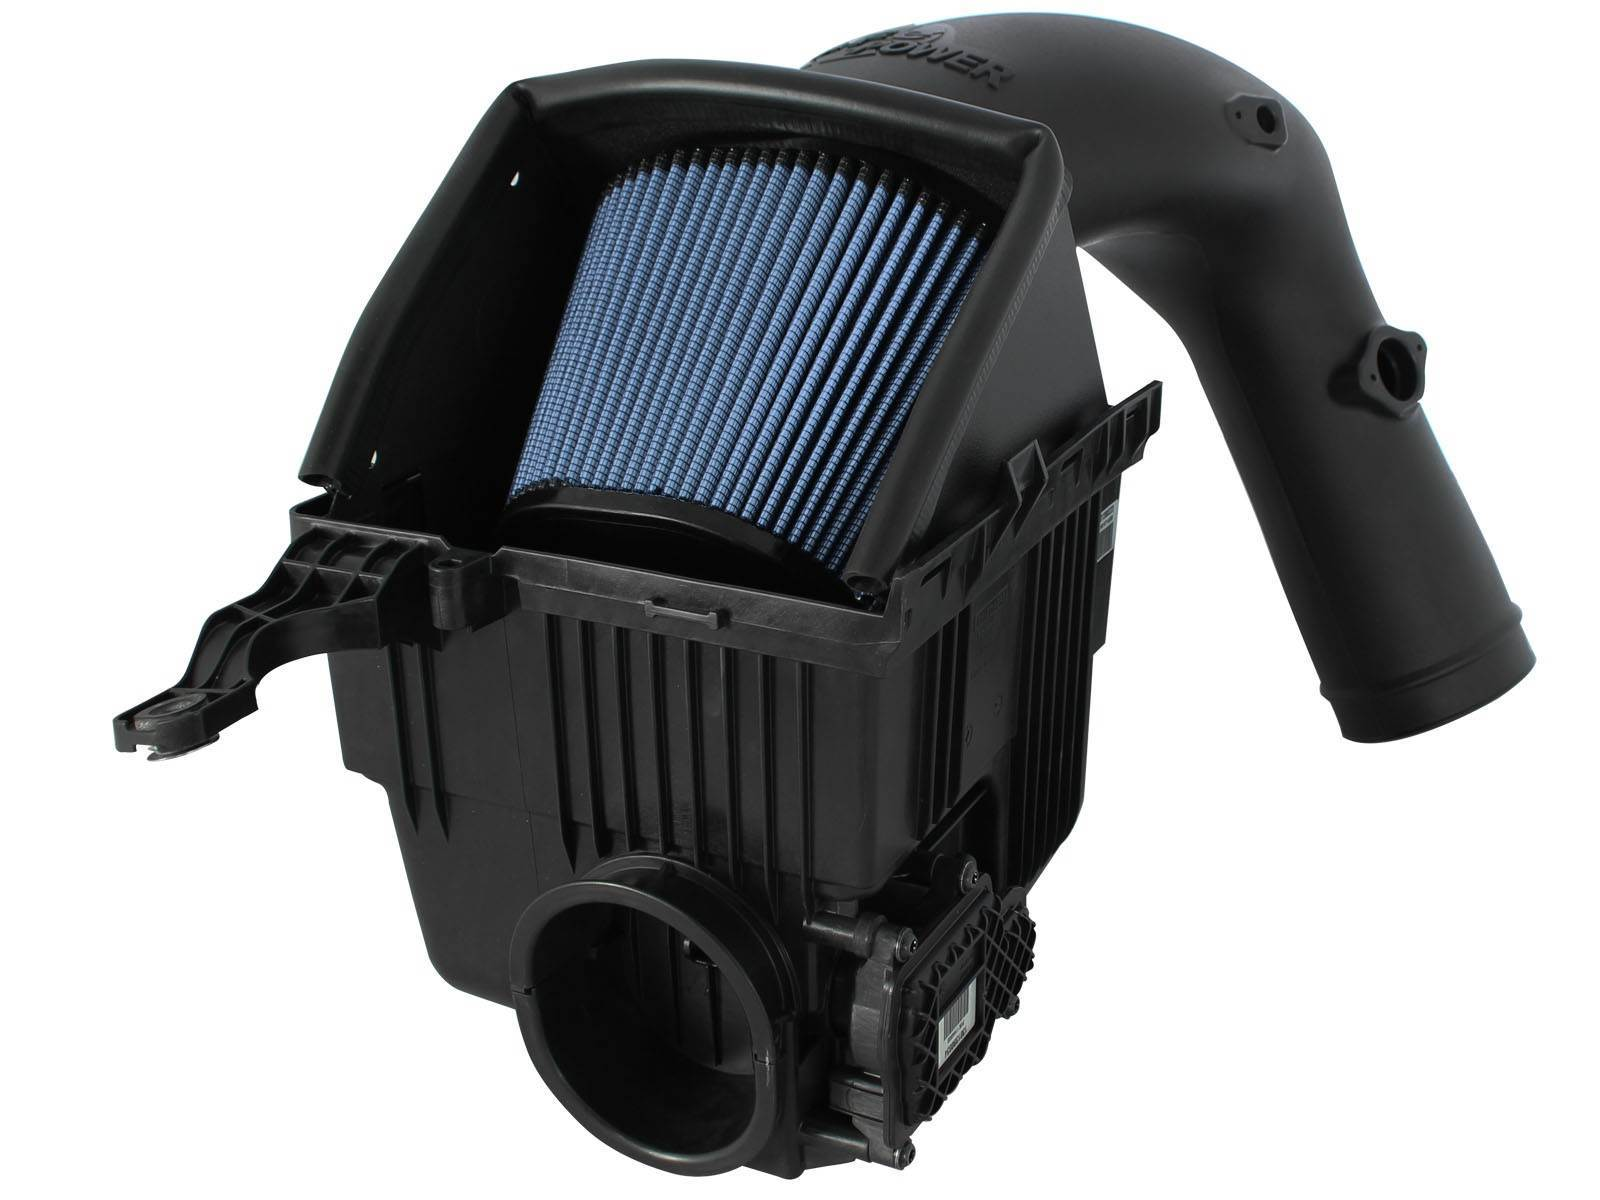 54-32412 - AFE's Pro5R Stage II Cold Air Intake System for 2013-2018 Dodge Cummins 6.7L diesels